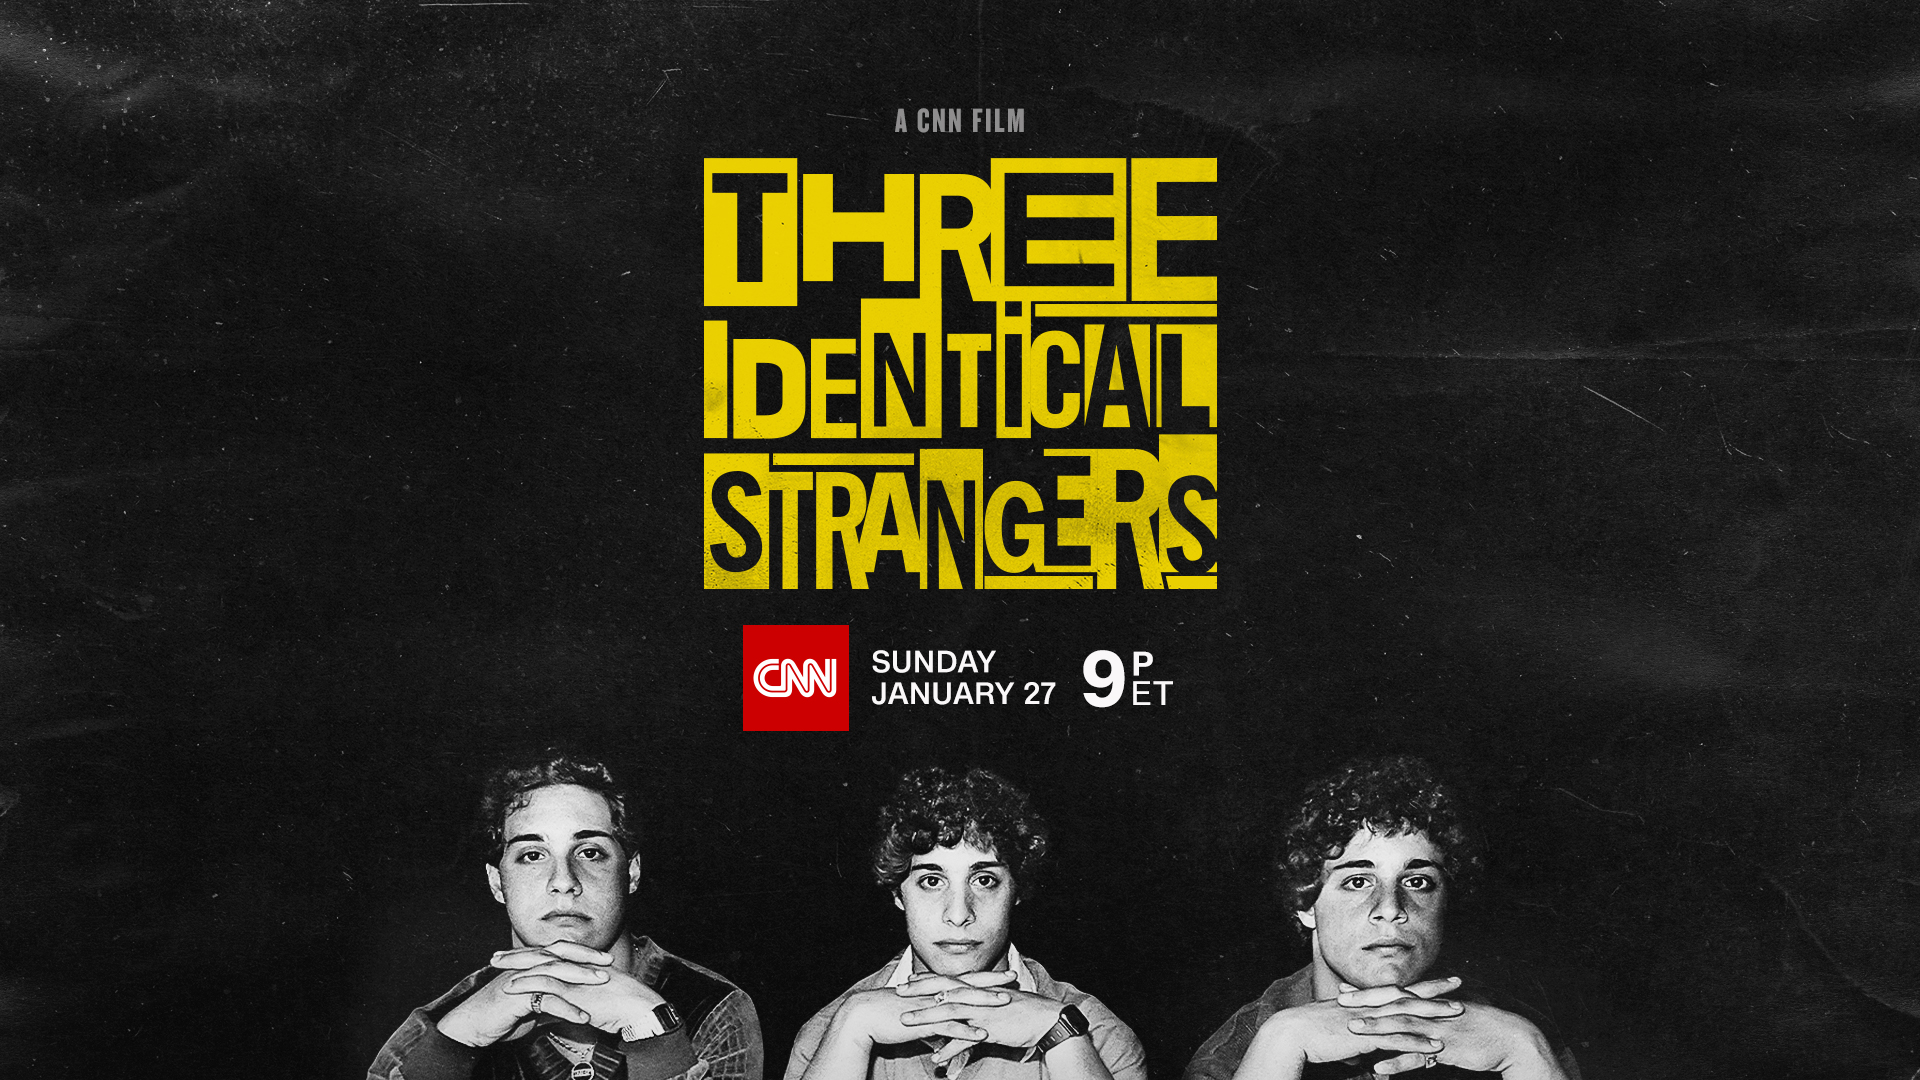 CNN Films Brings THREE IDENTICAL STRANGERS to TV for Sunday